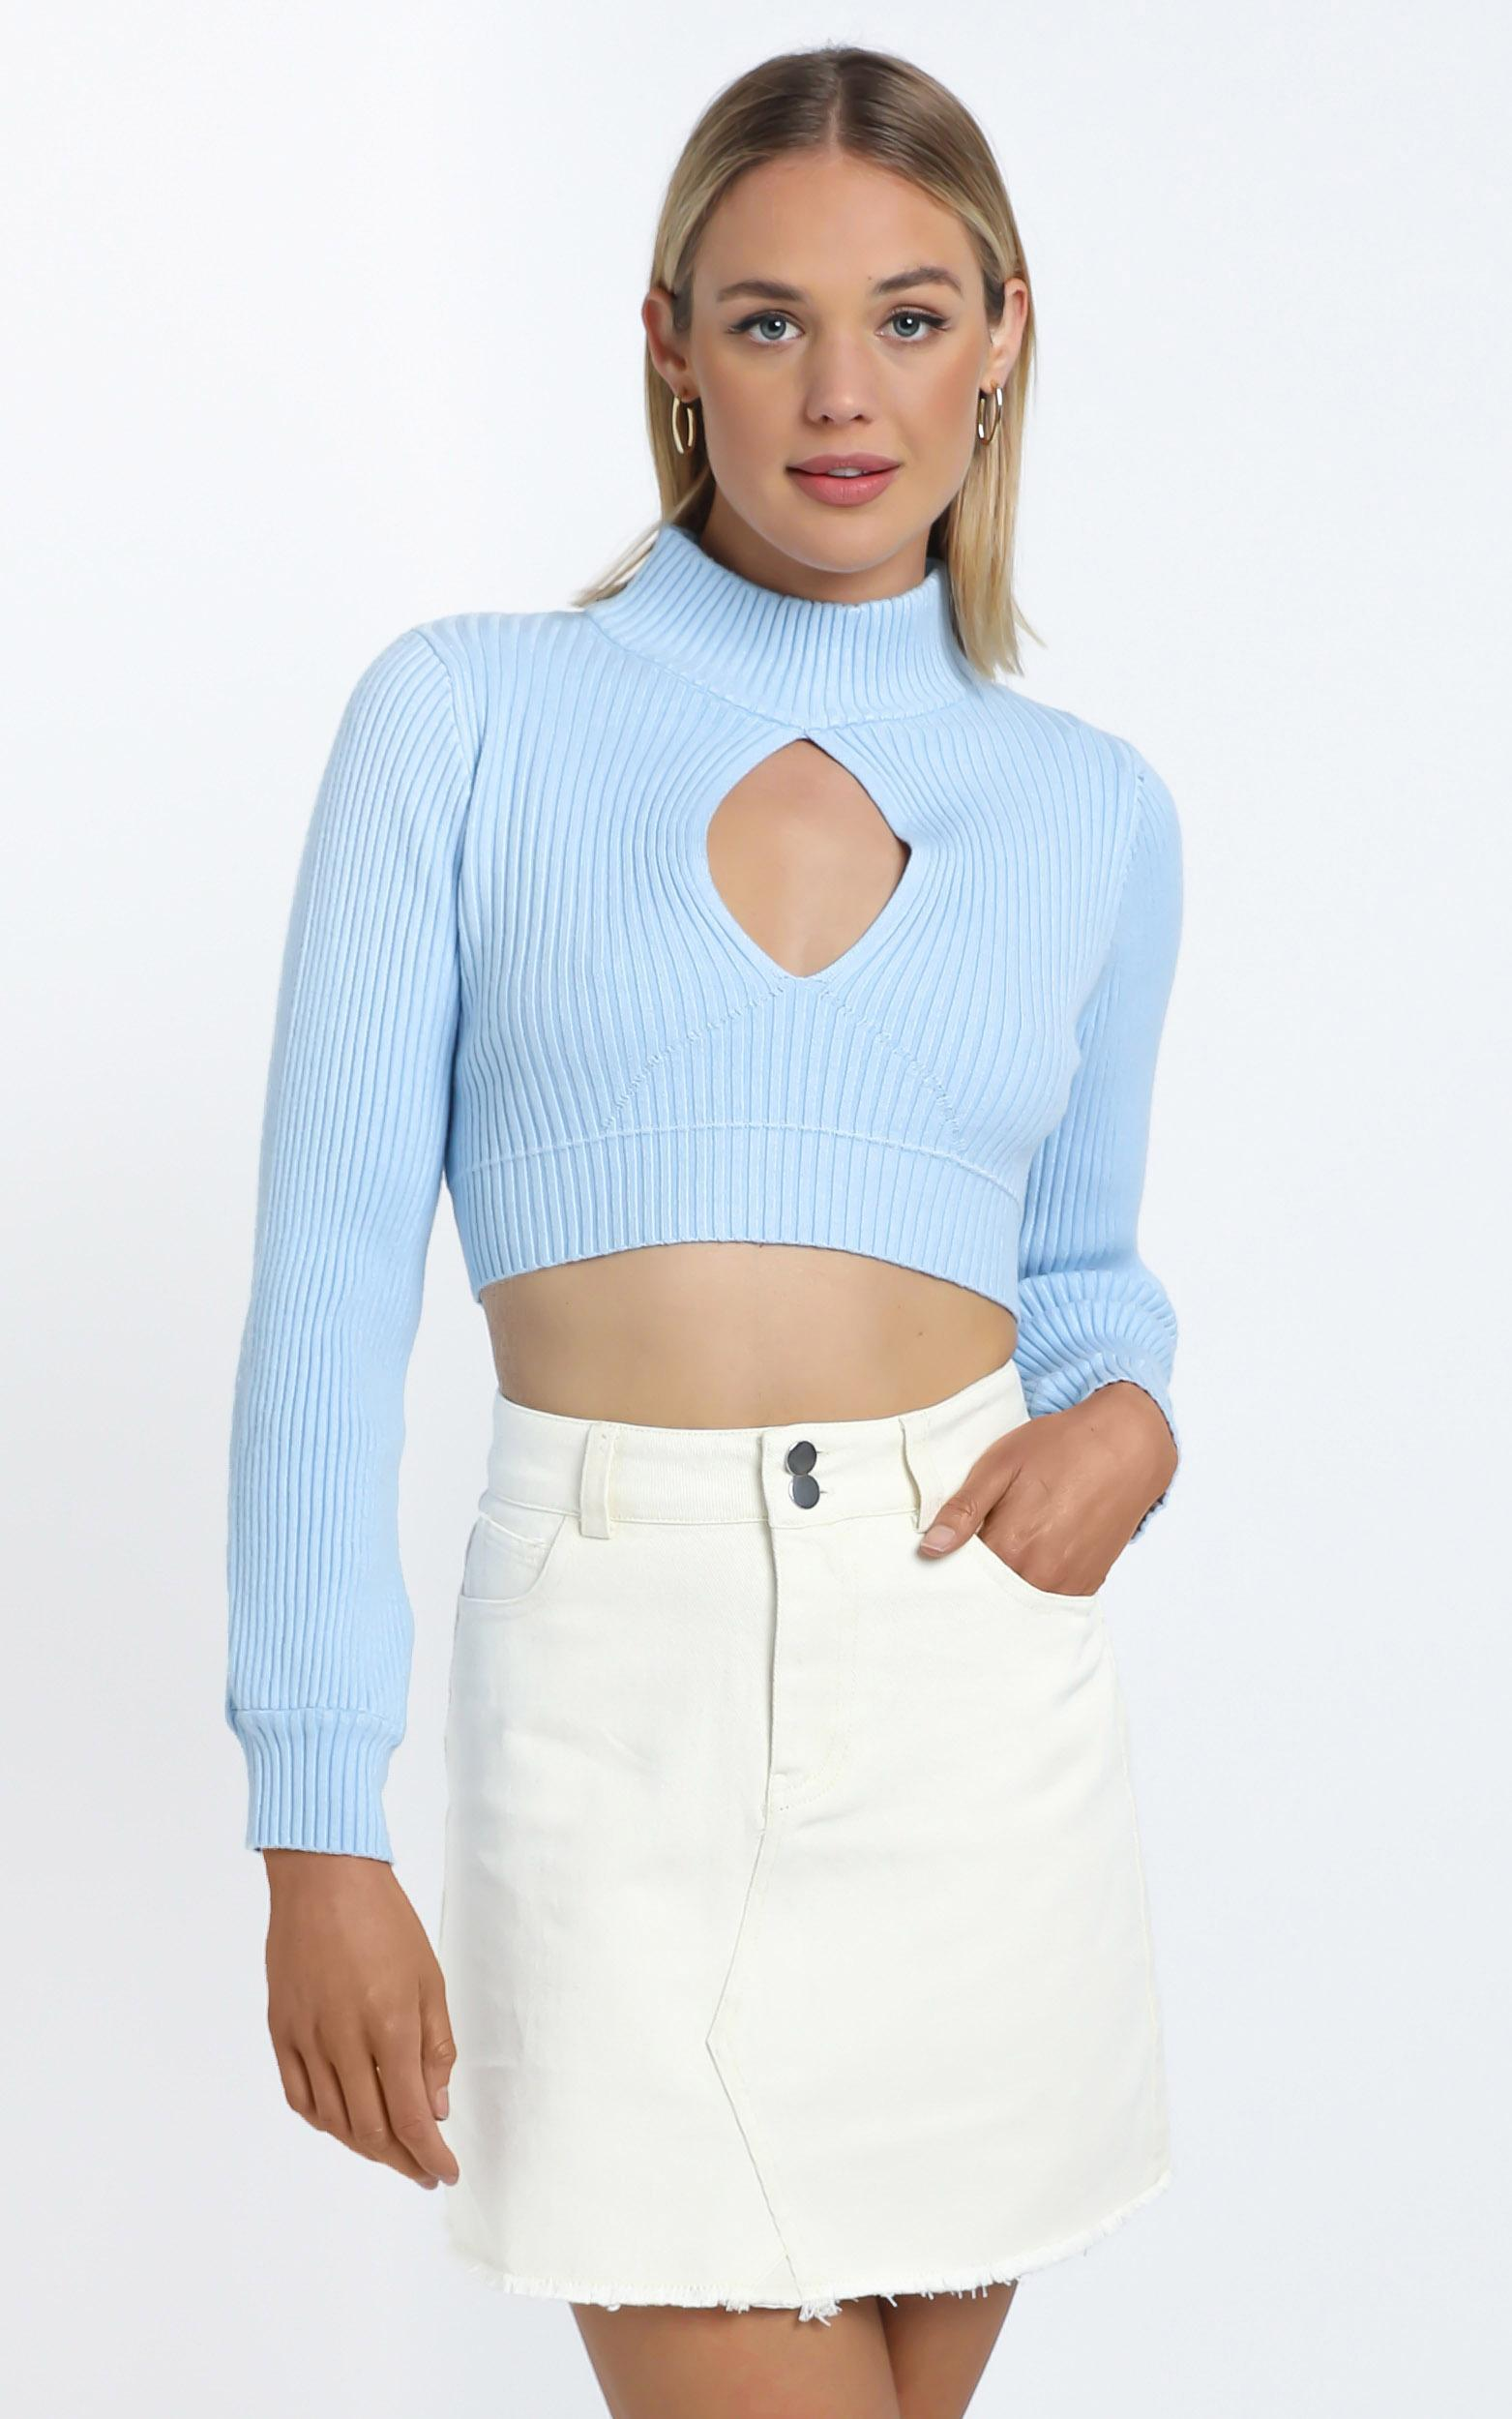 Cisco Knit Top in Baby Blue - 12 (L), BLU1, hi-res image number null